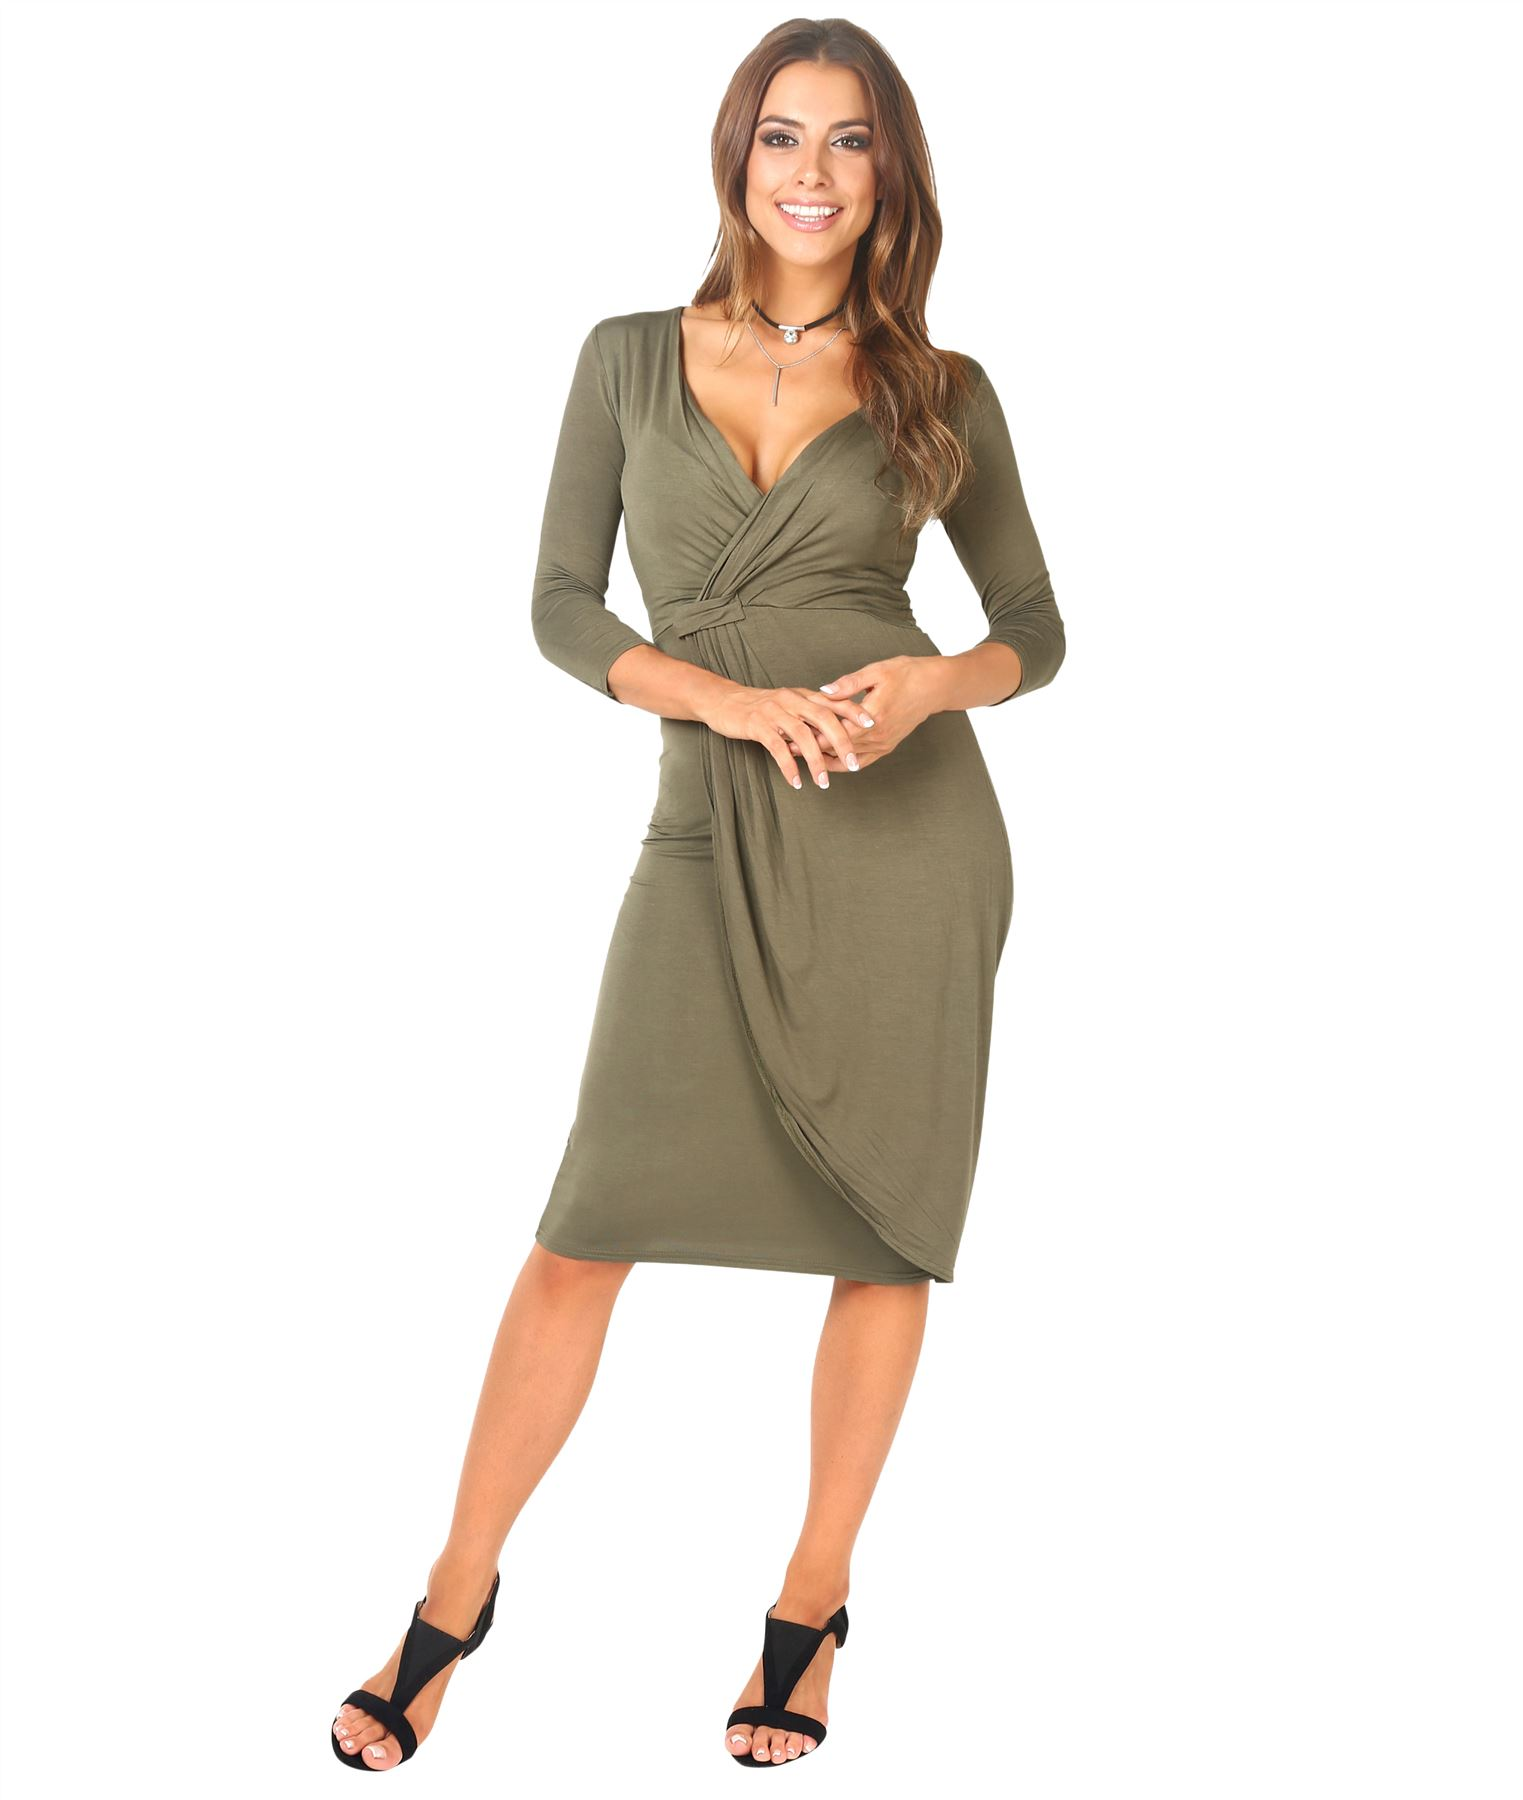 Womens-Ladies-Shift-Wrap-Dress-Midi-Knee-Long-Quarter-Sleeve-Sexy-Solid-Party thumbnail 12